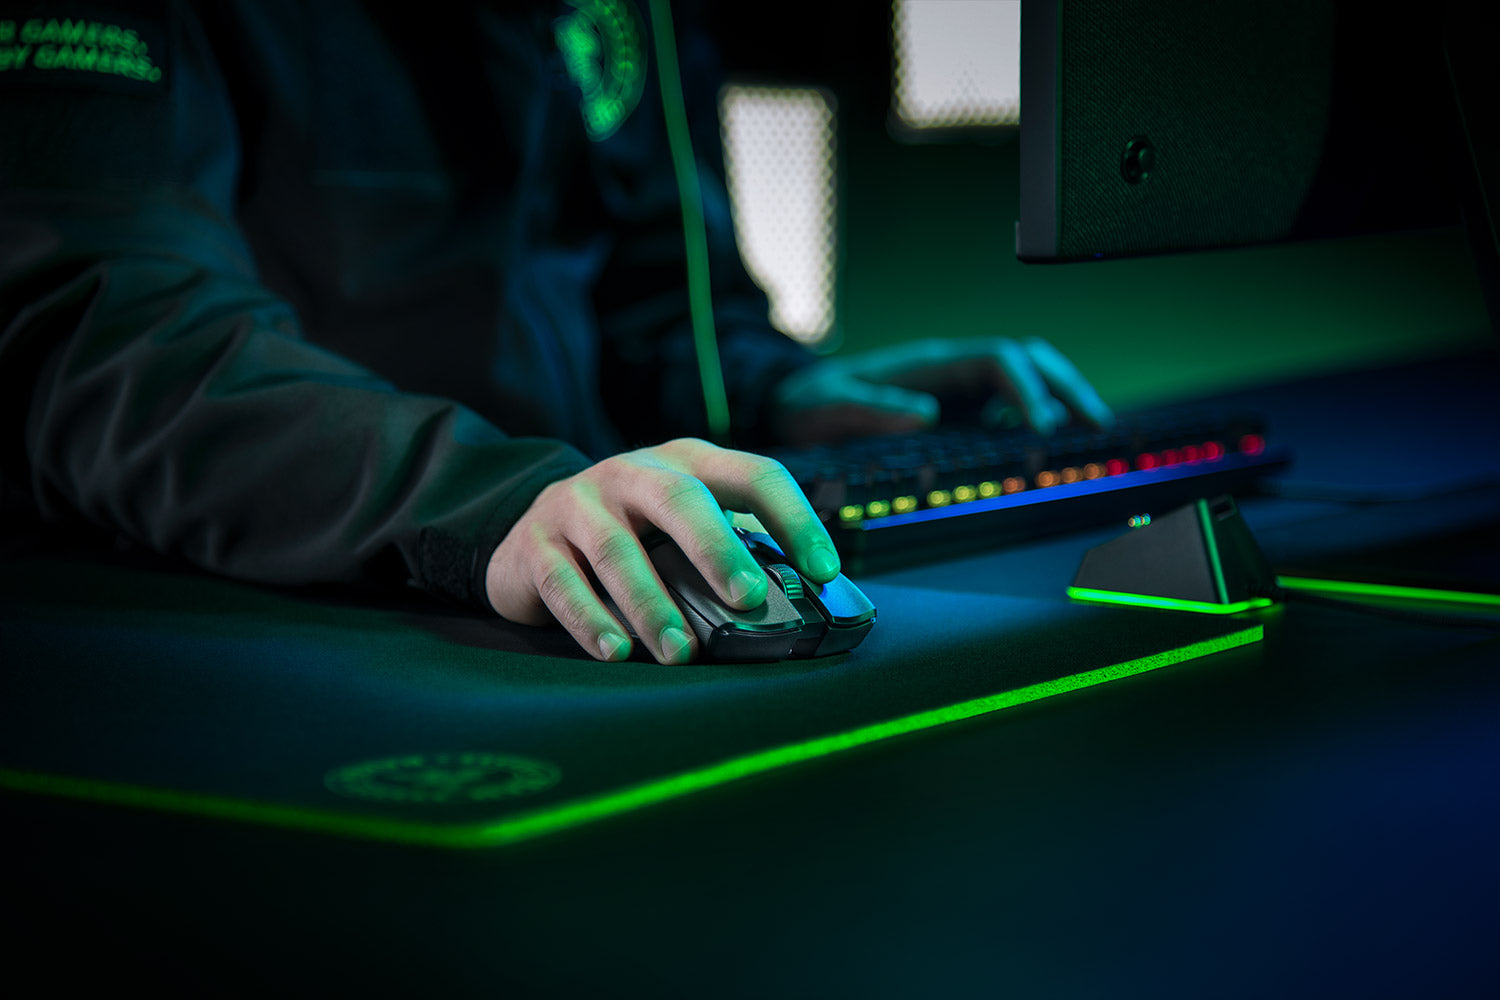 RAZER HYPERSPEED WIRELESS - 25% faster than any other wireless technology available, you won't even realize that you're gaming with a wireless mouse due to its high-speed transmission, lowest click latency, and seamless frequency switching in the noisiest, data-saturated environments.